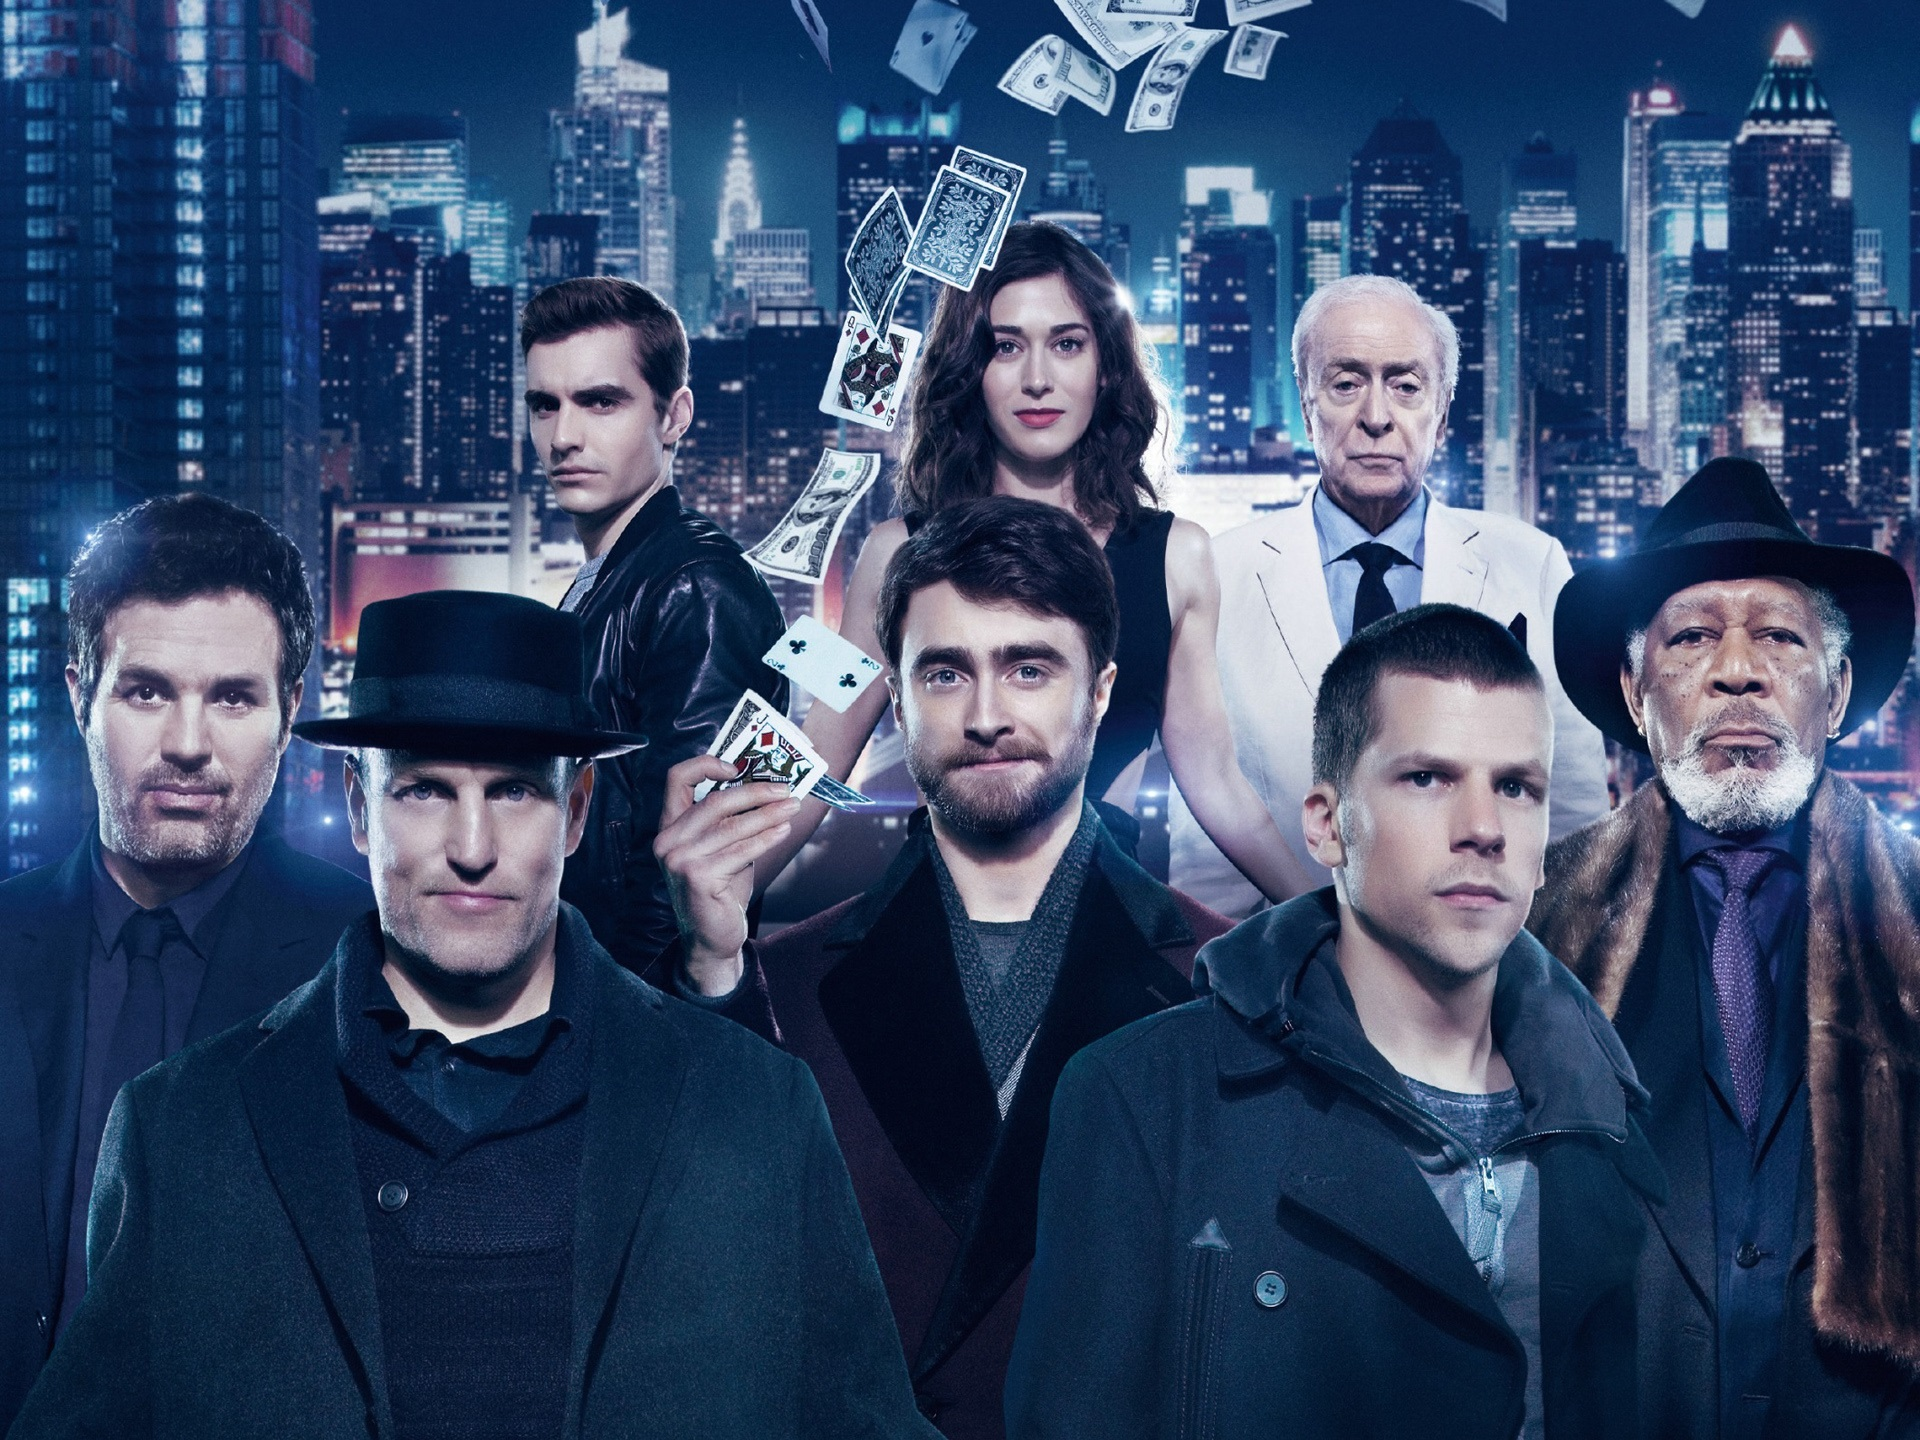 download now u see me 2 movie